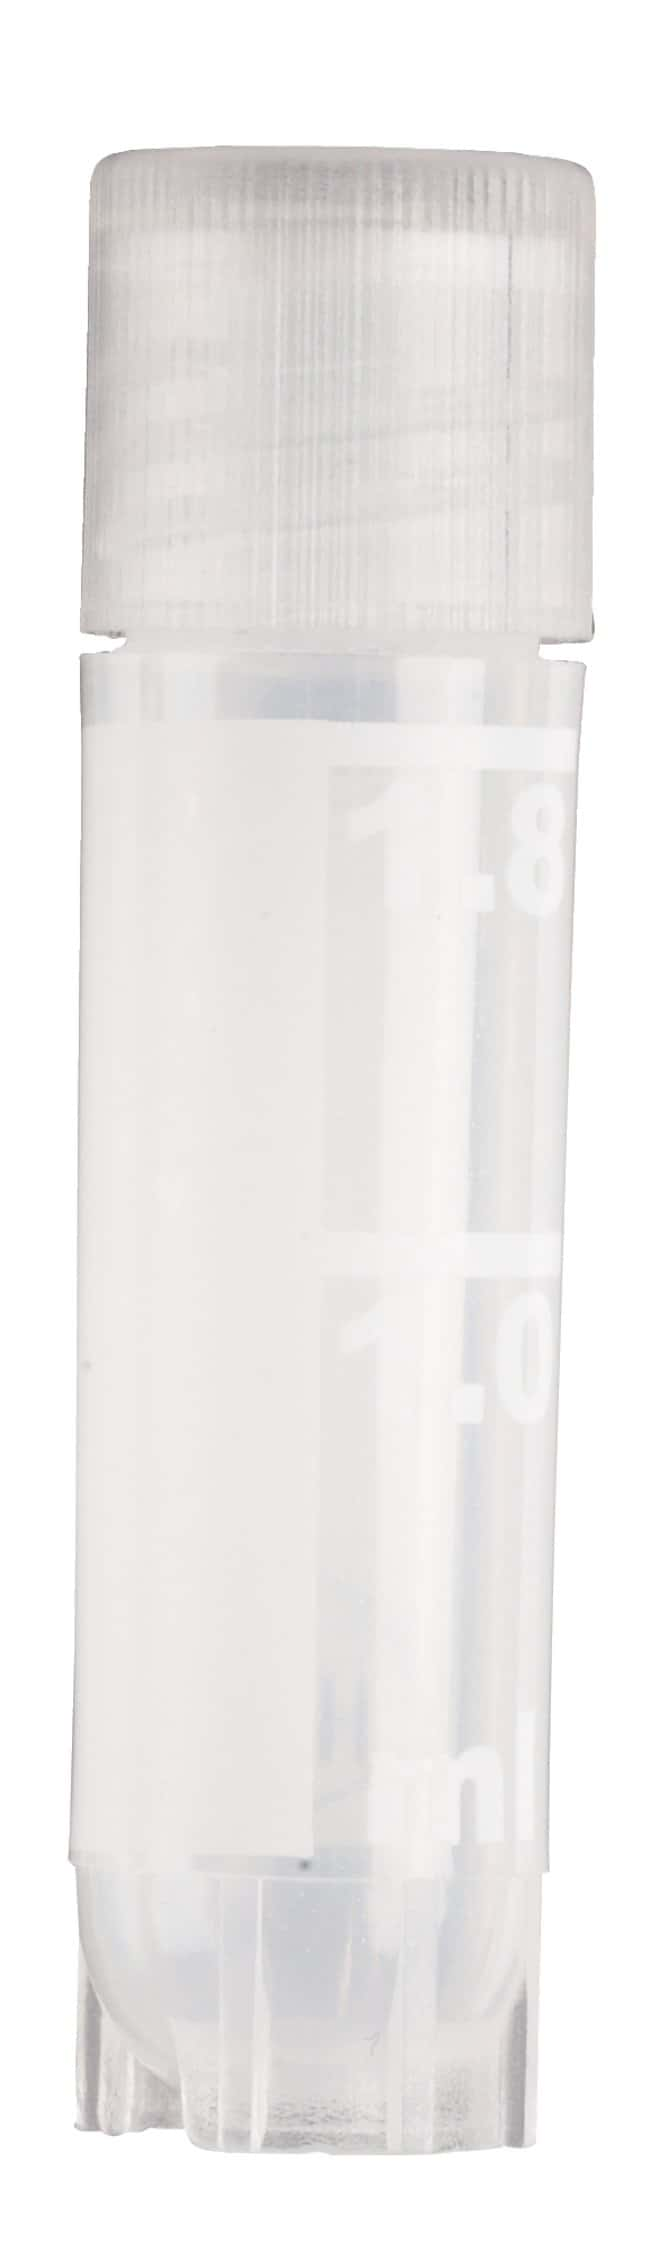 Heathrow Scientific True North™ Cryogenic Vial 2.0 mL Natural Heathrow Scientific True North™ Cryogenic Vial 2.0 mL